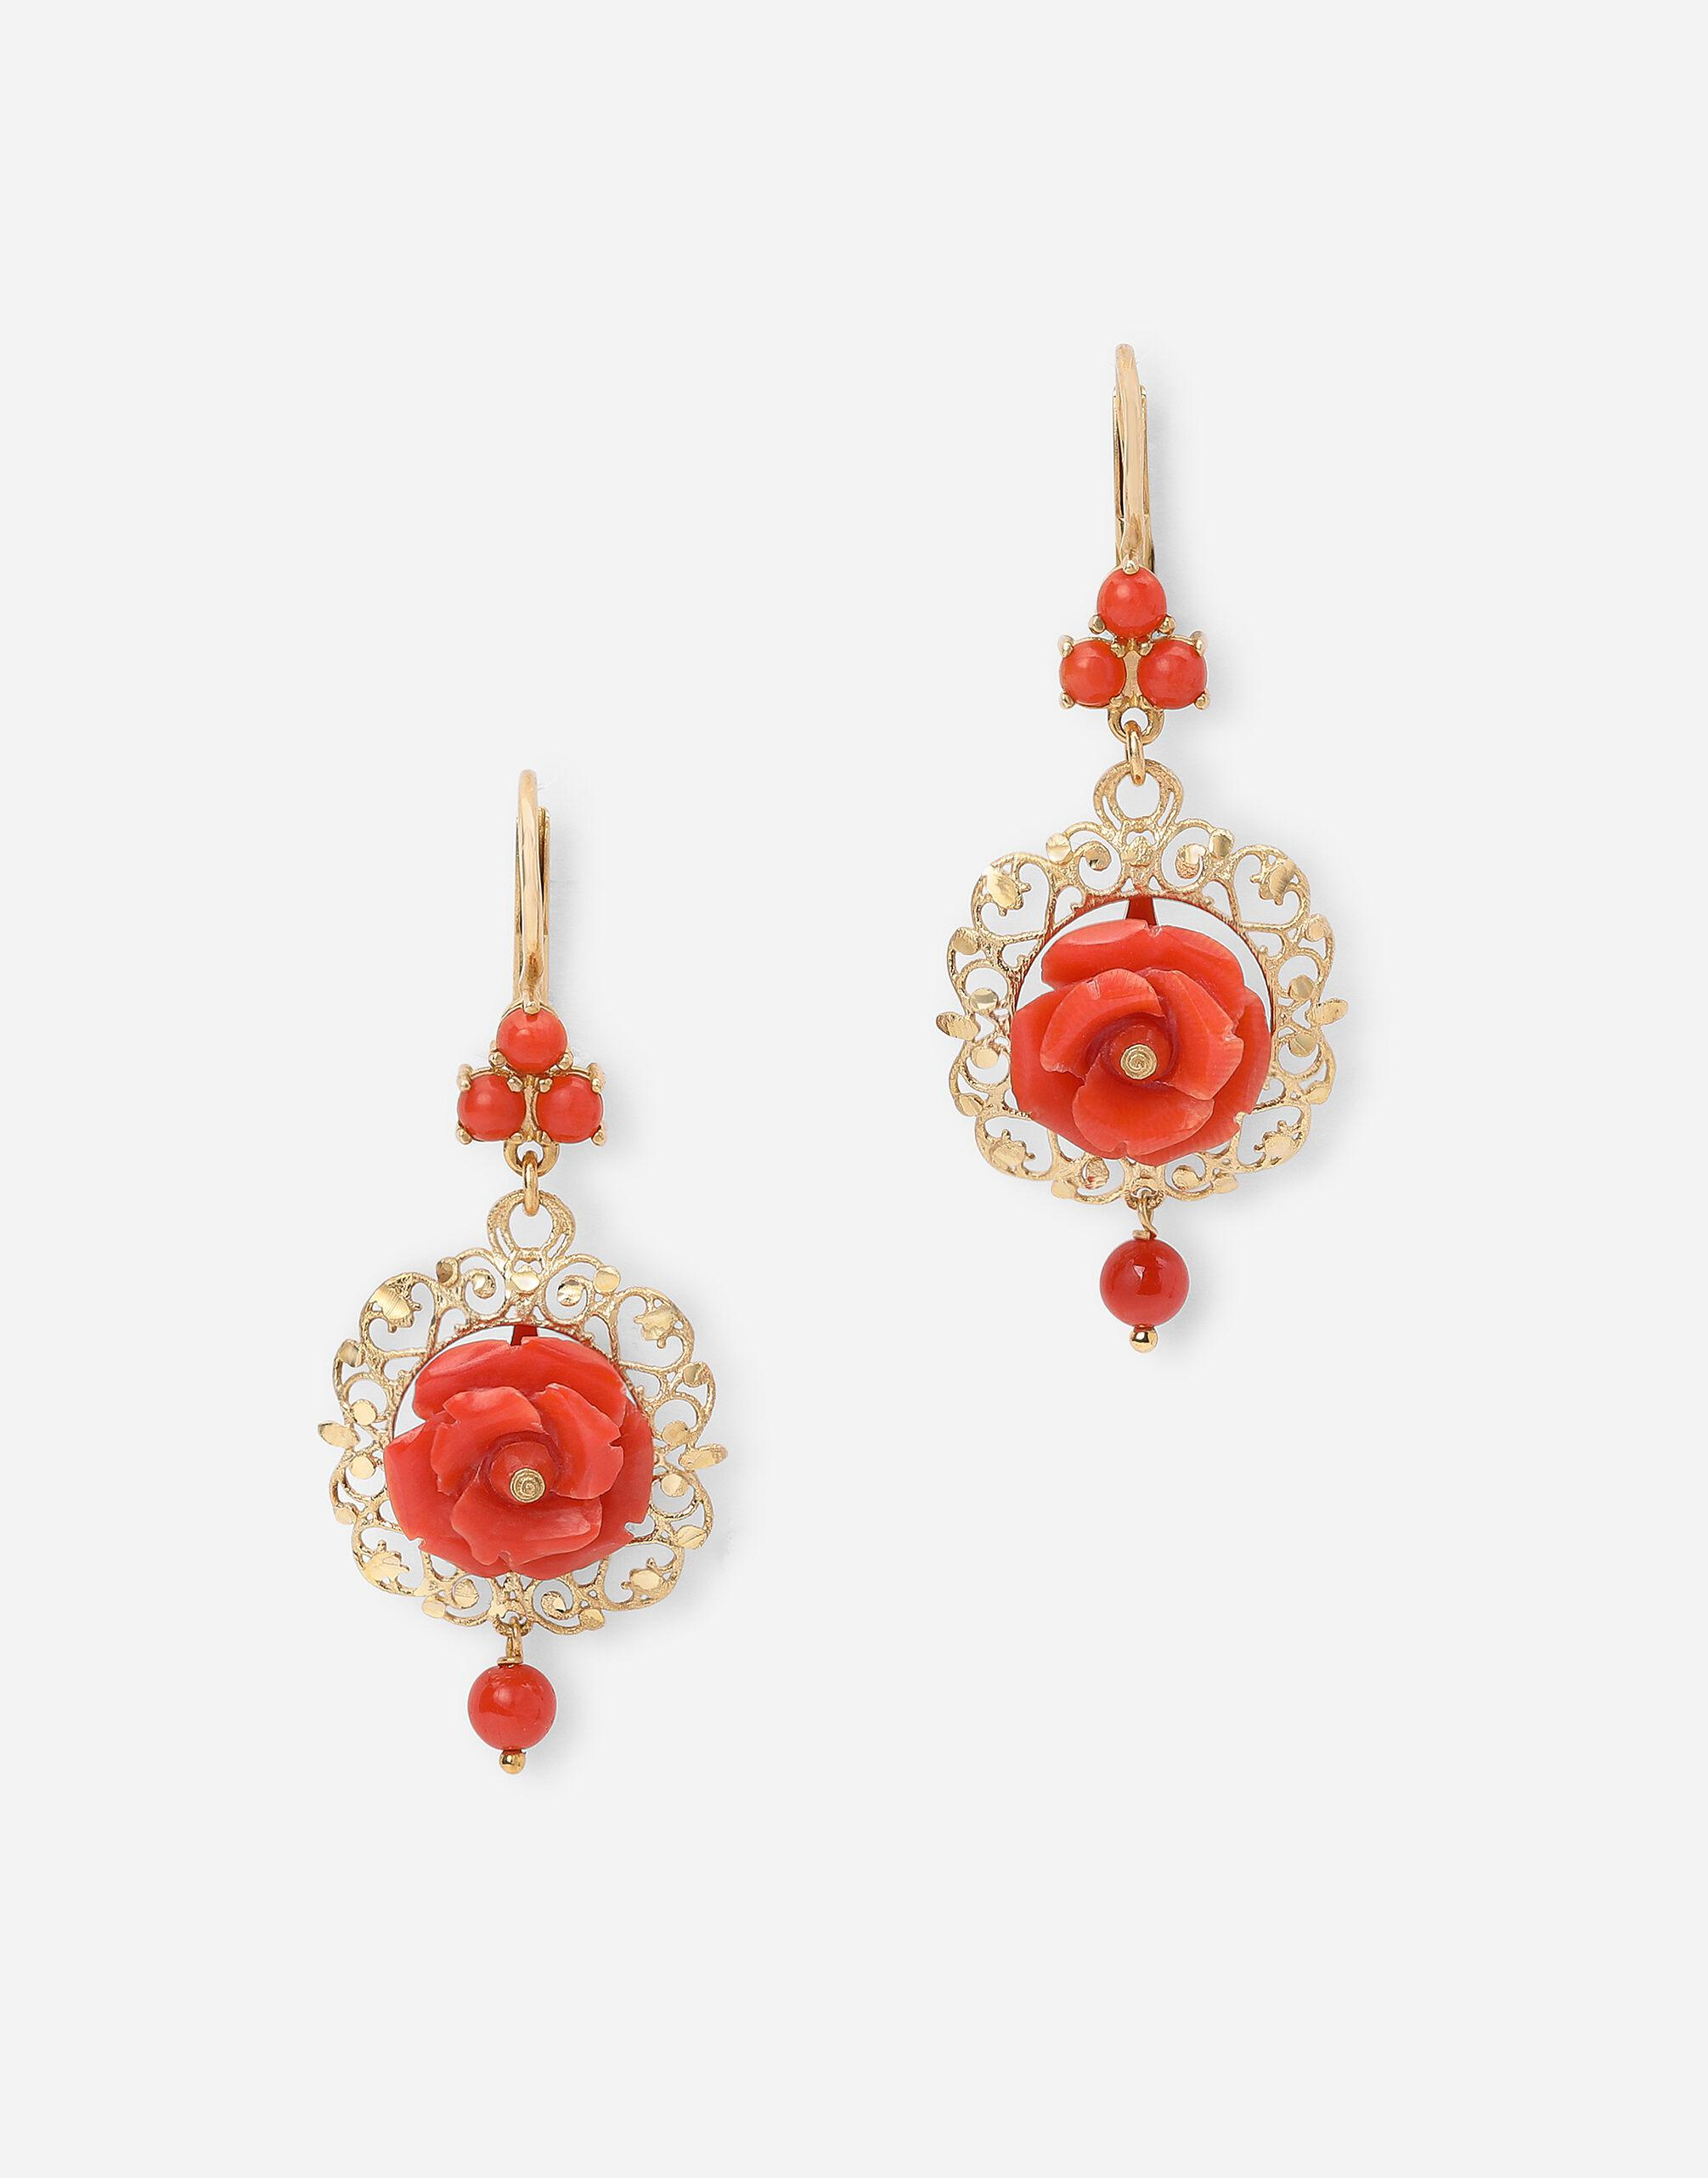 Coral leverback earrings in yellow 18kt gold with coral roses